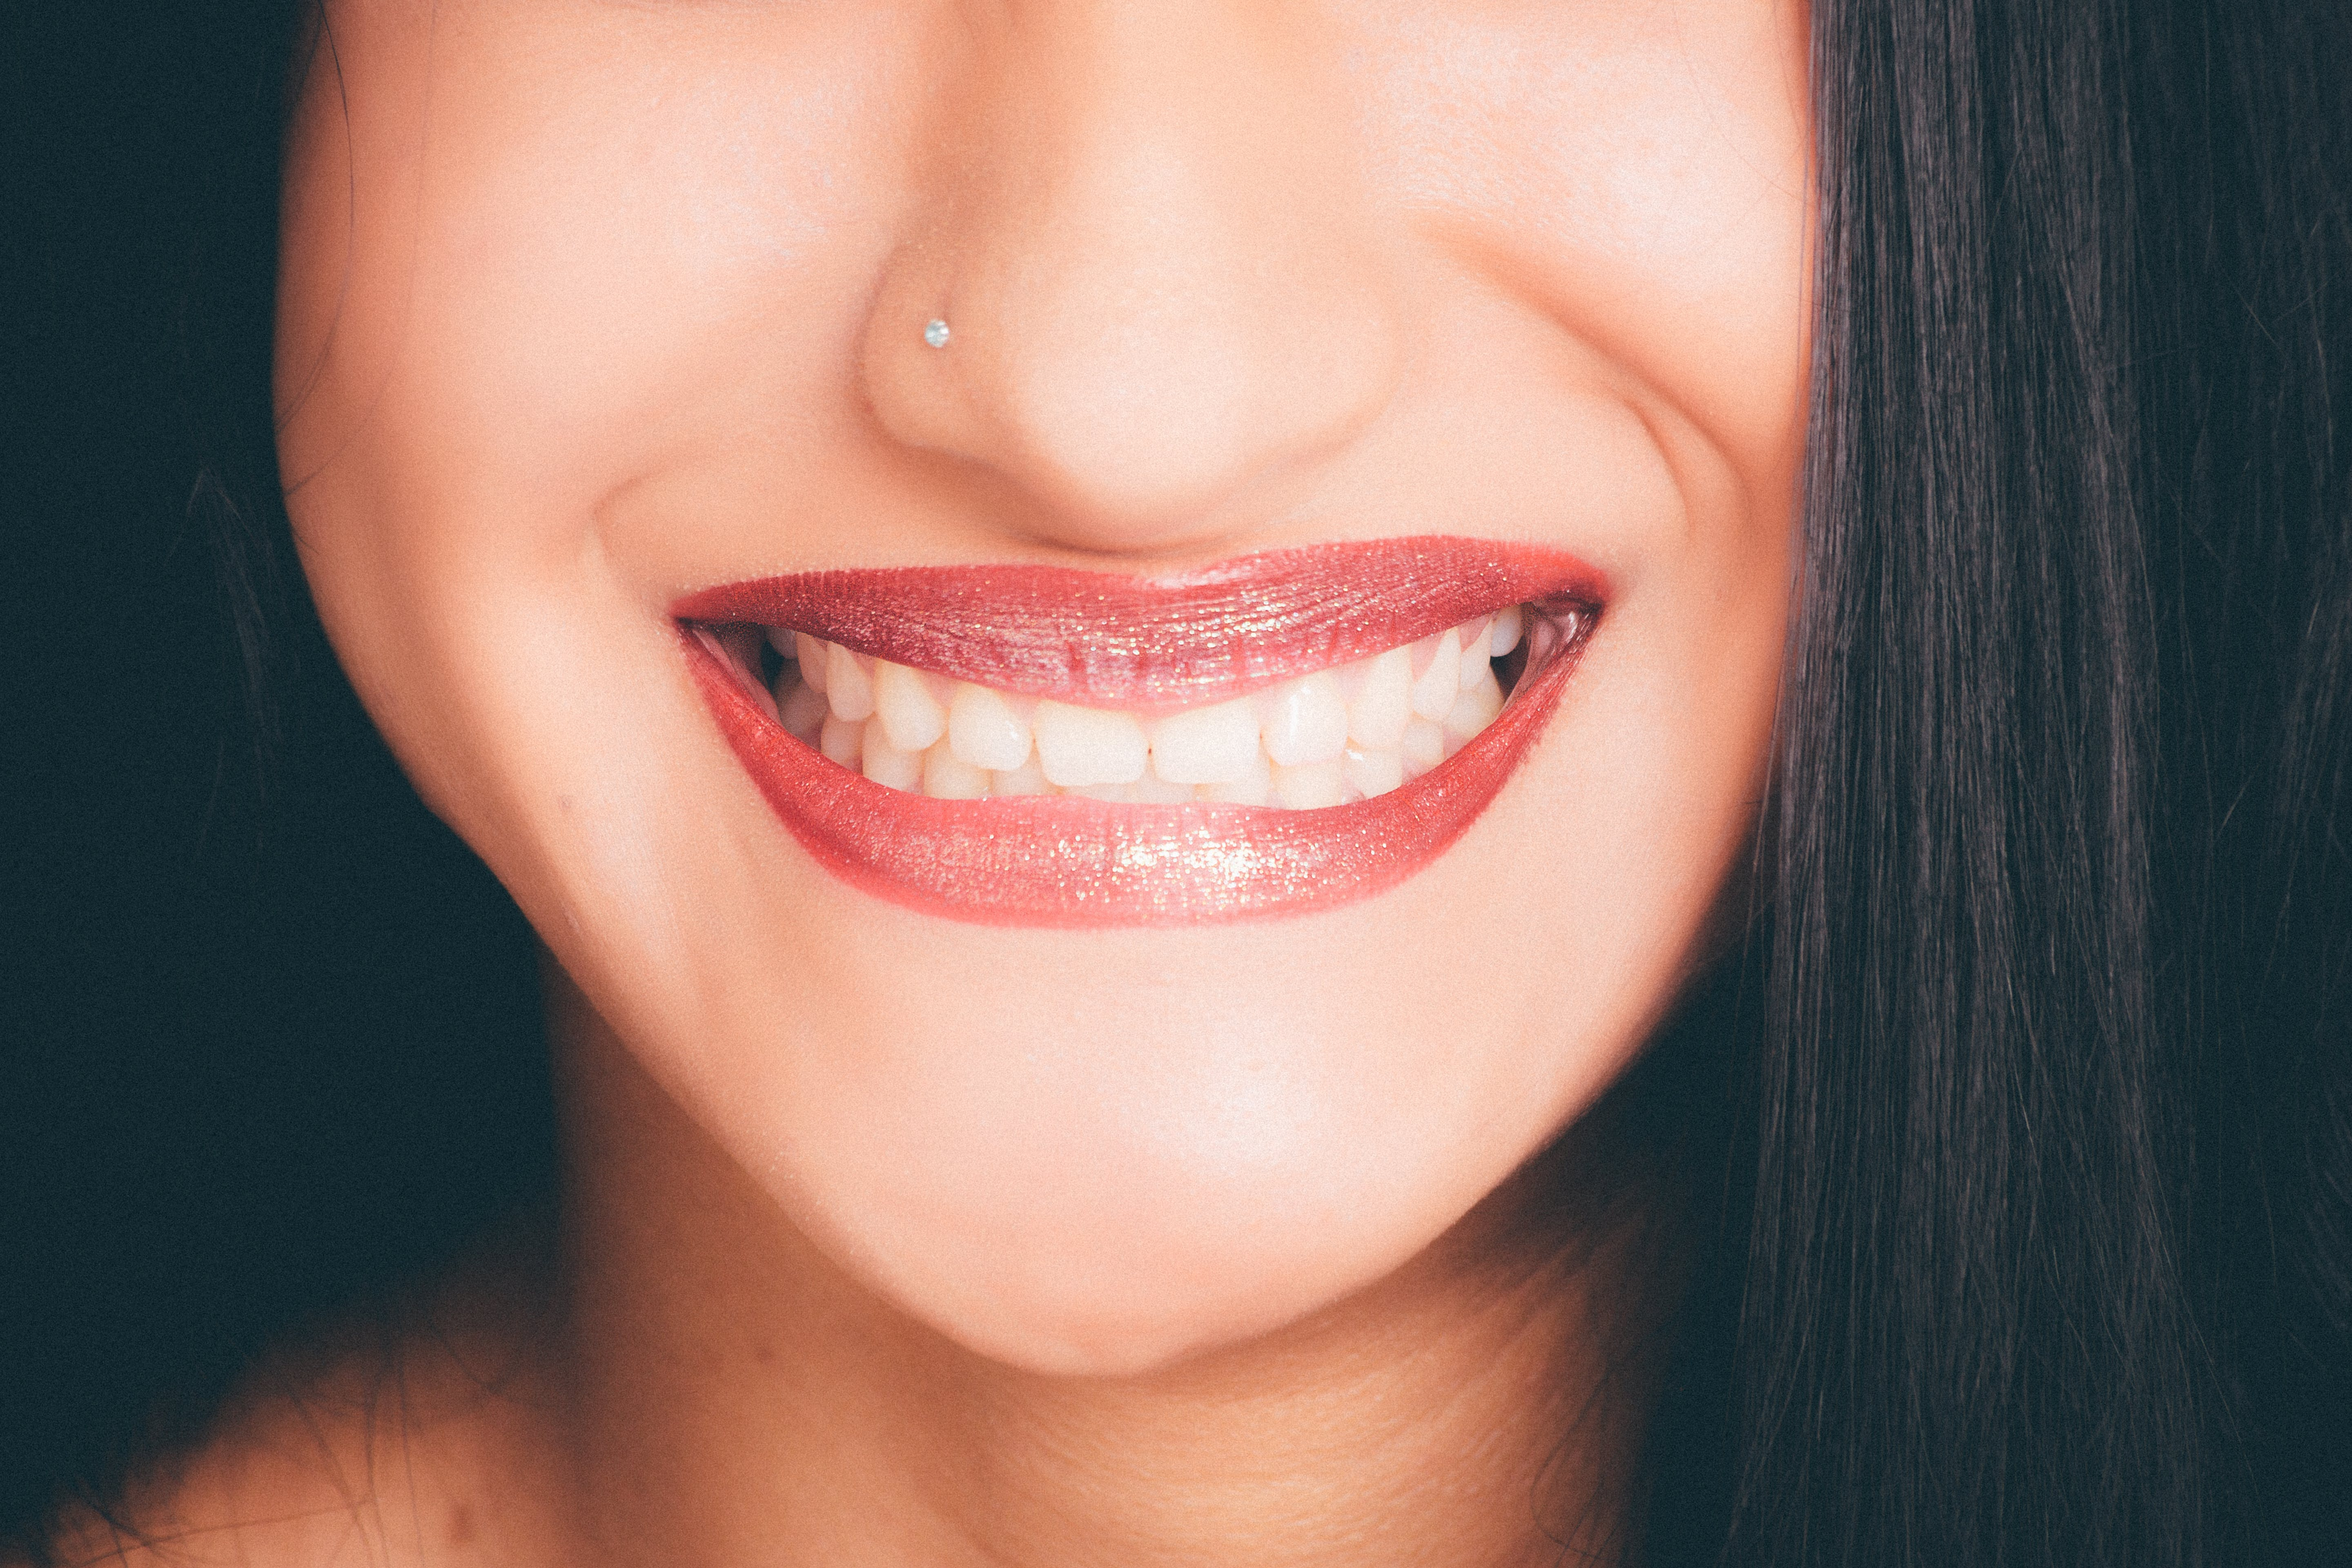 Woman with a Big Smile and Red Lipstick